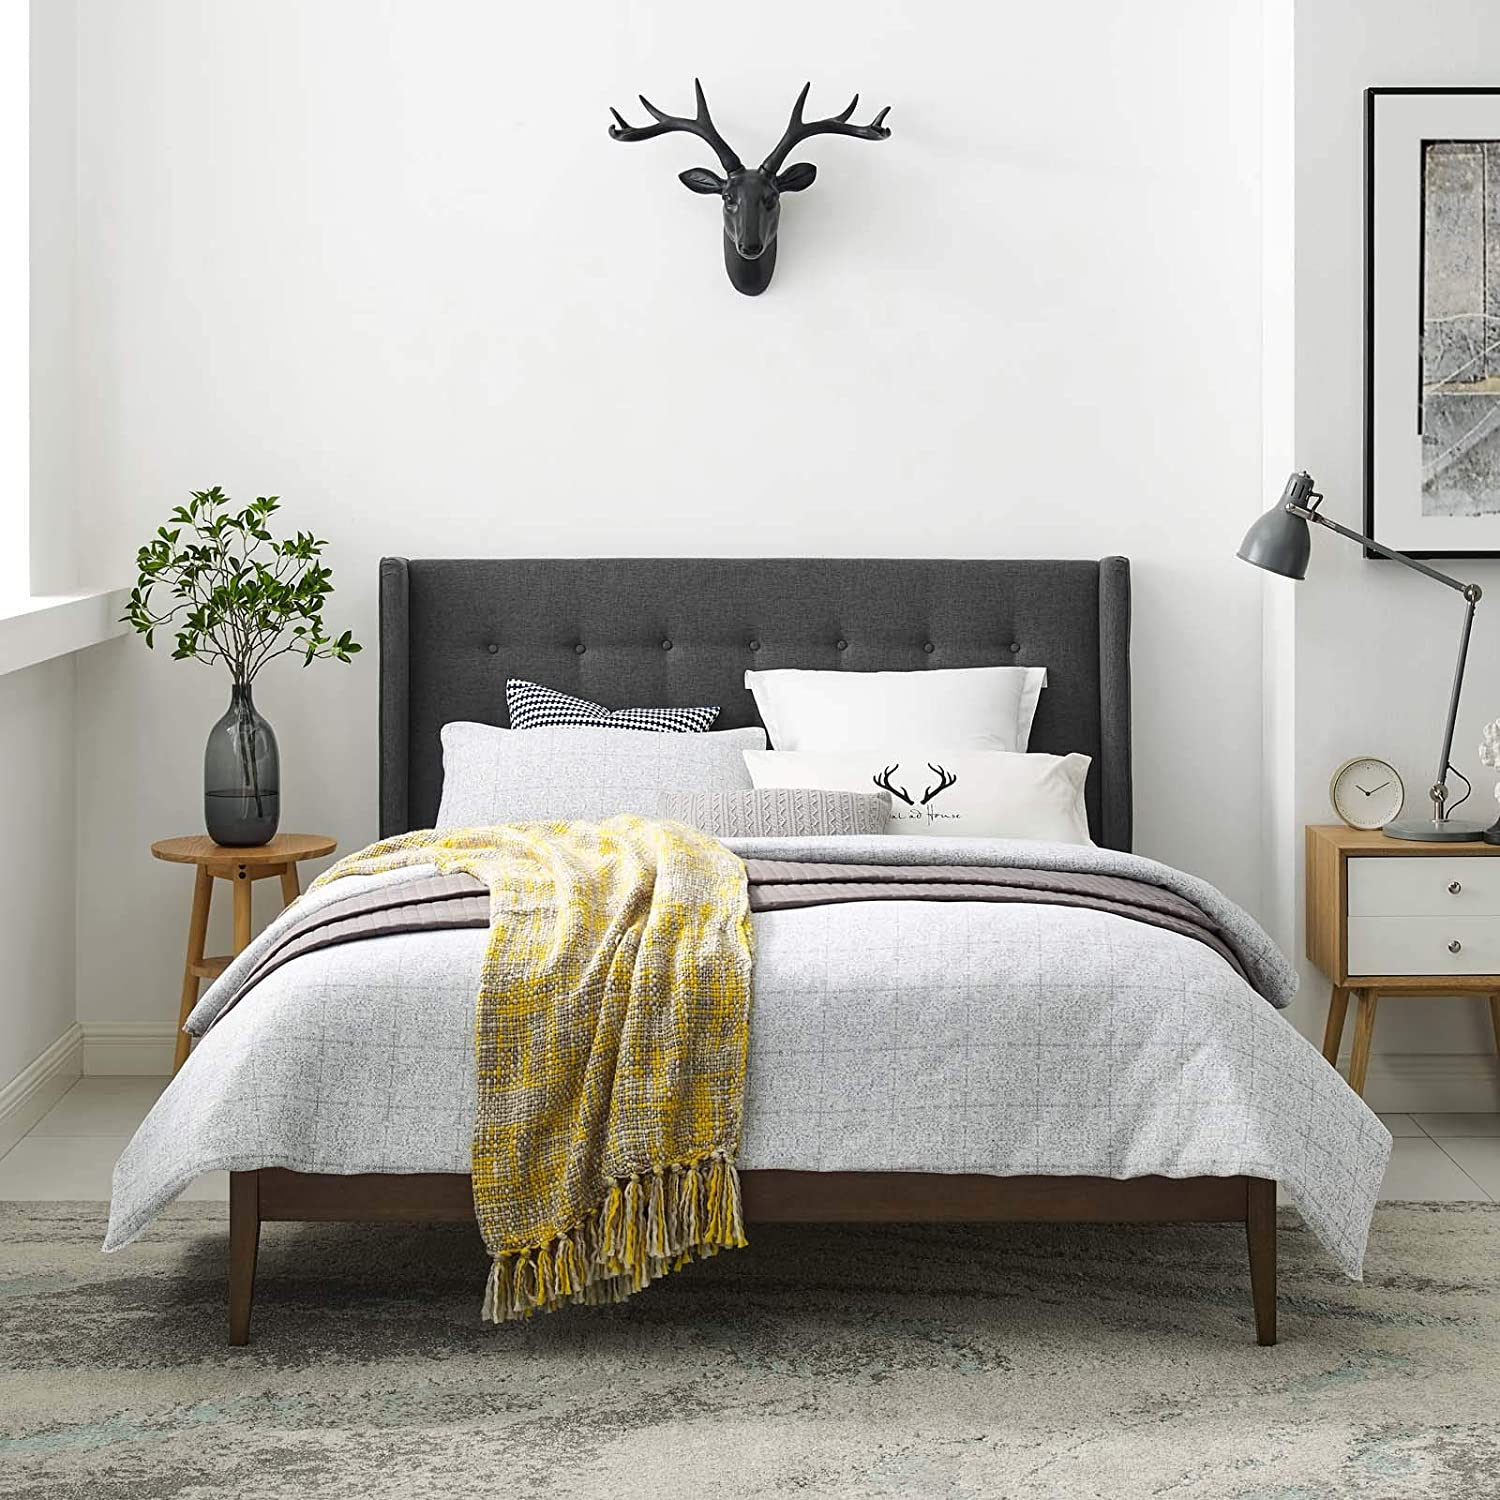 Modway Hadley Tufted Upholstered Wingback Queen Platform Bed in Gray